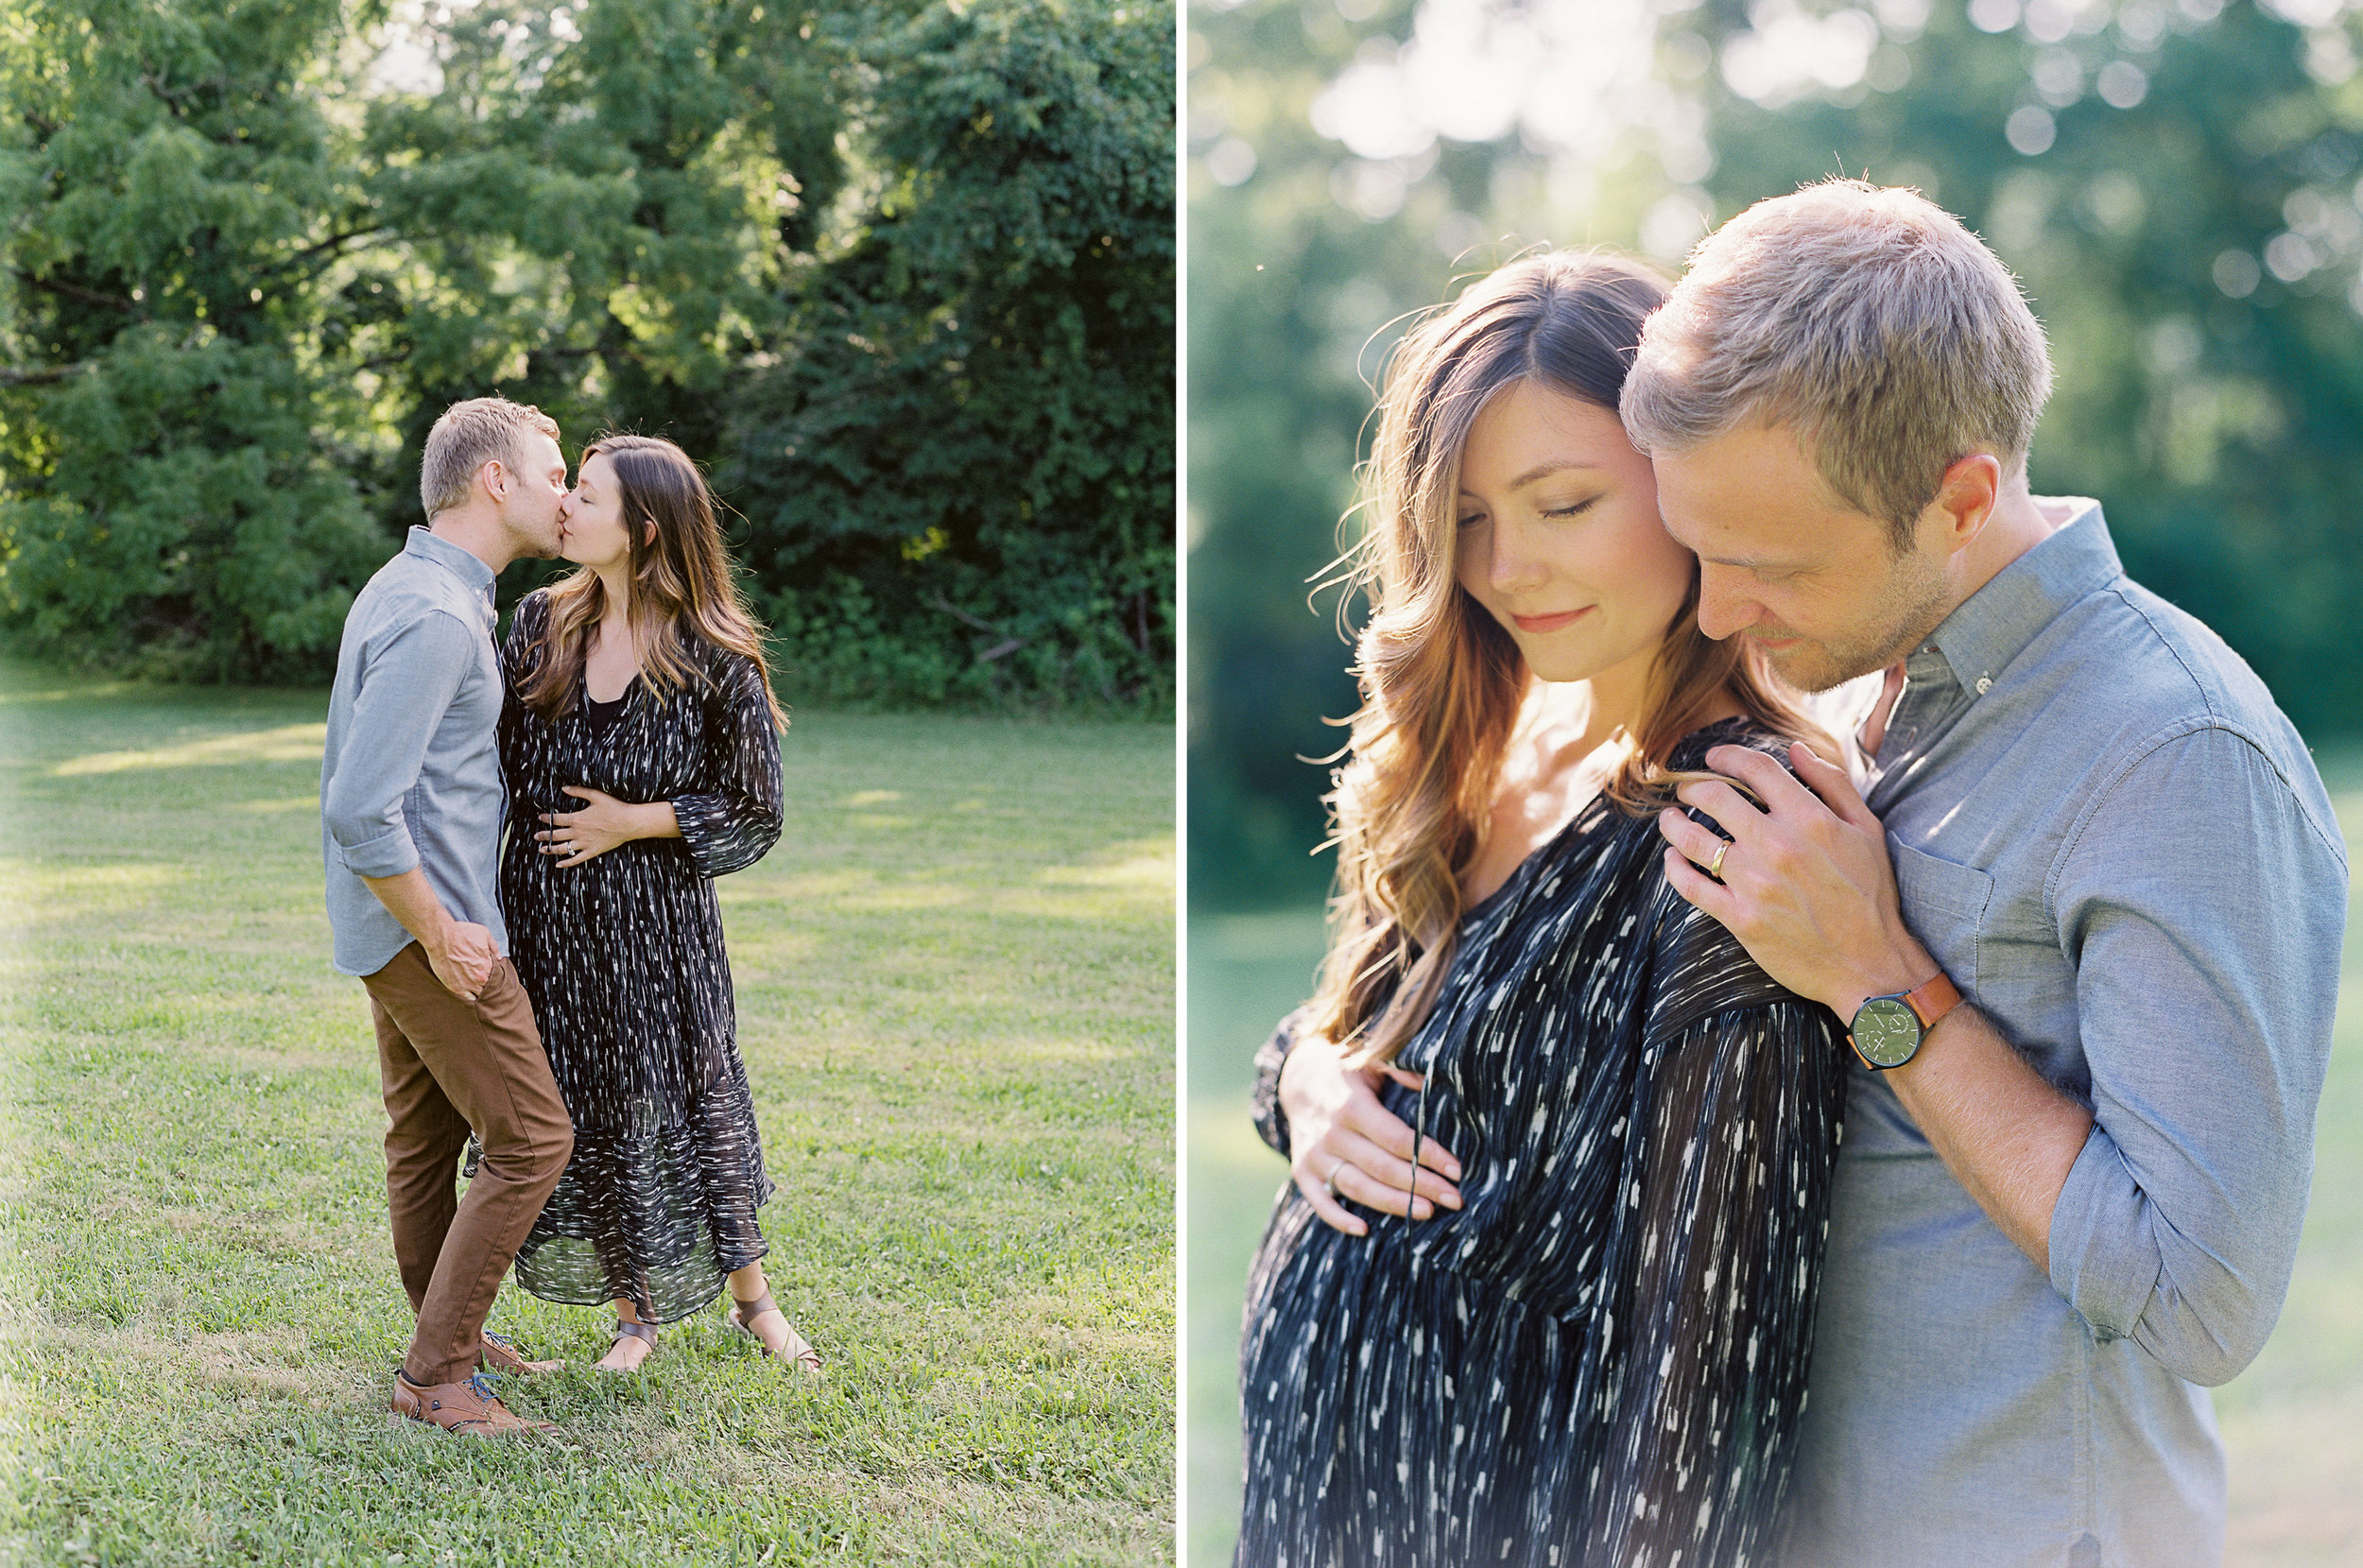 pittsburgh-maternity-session-on-film-anna-laero-photography2.jpg